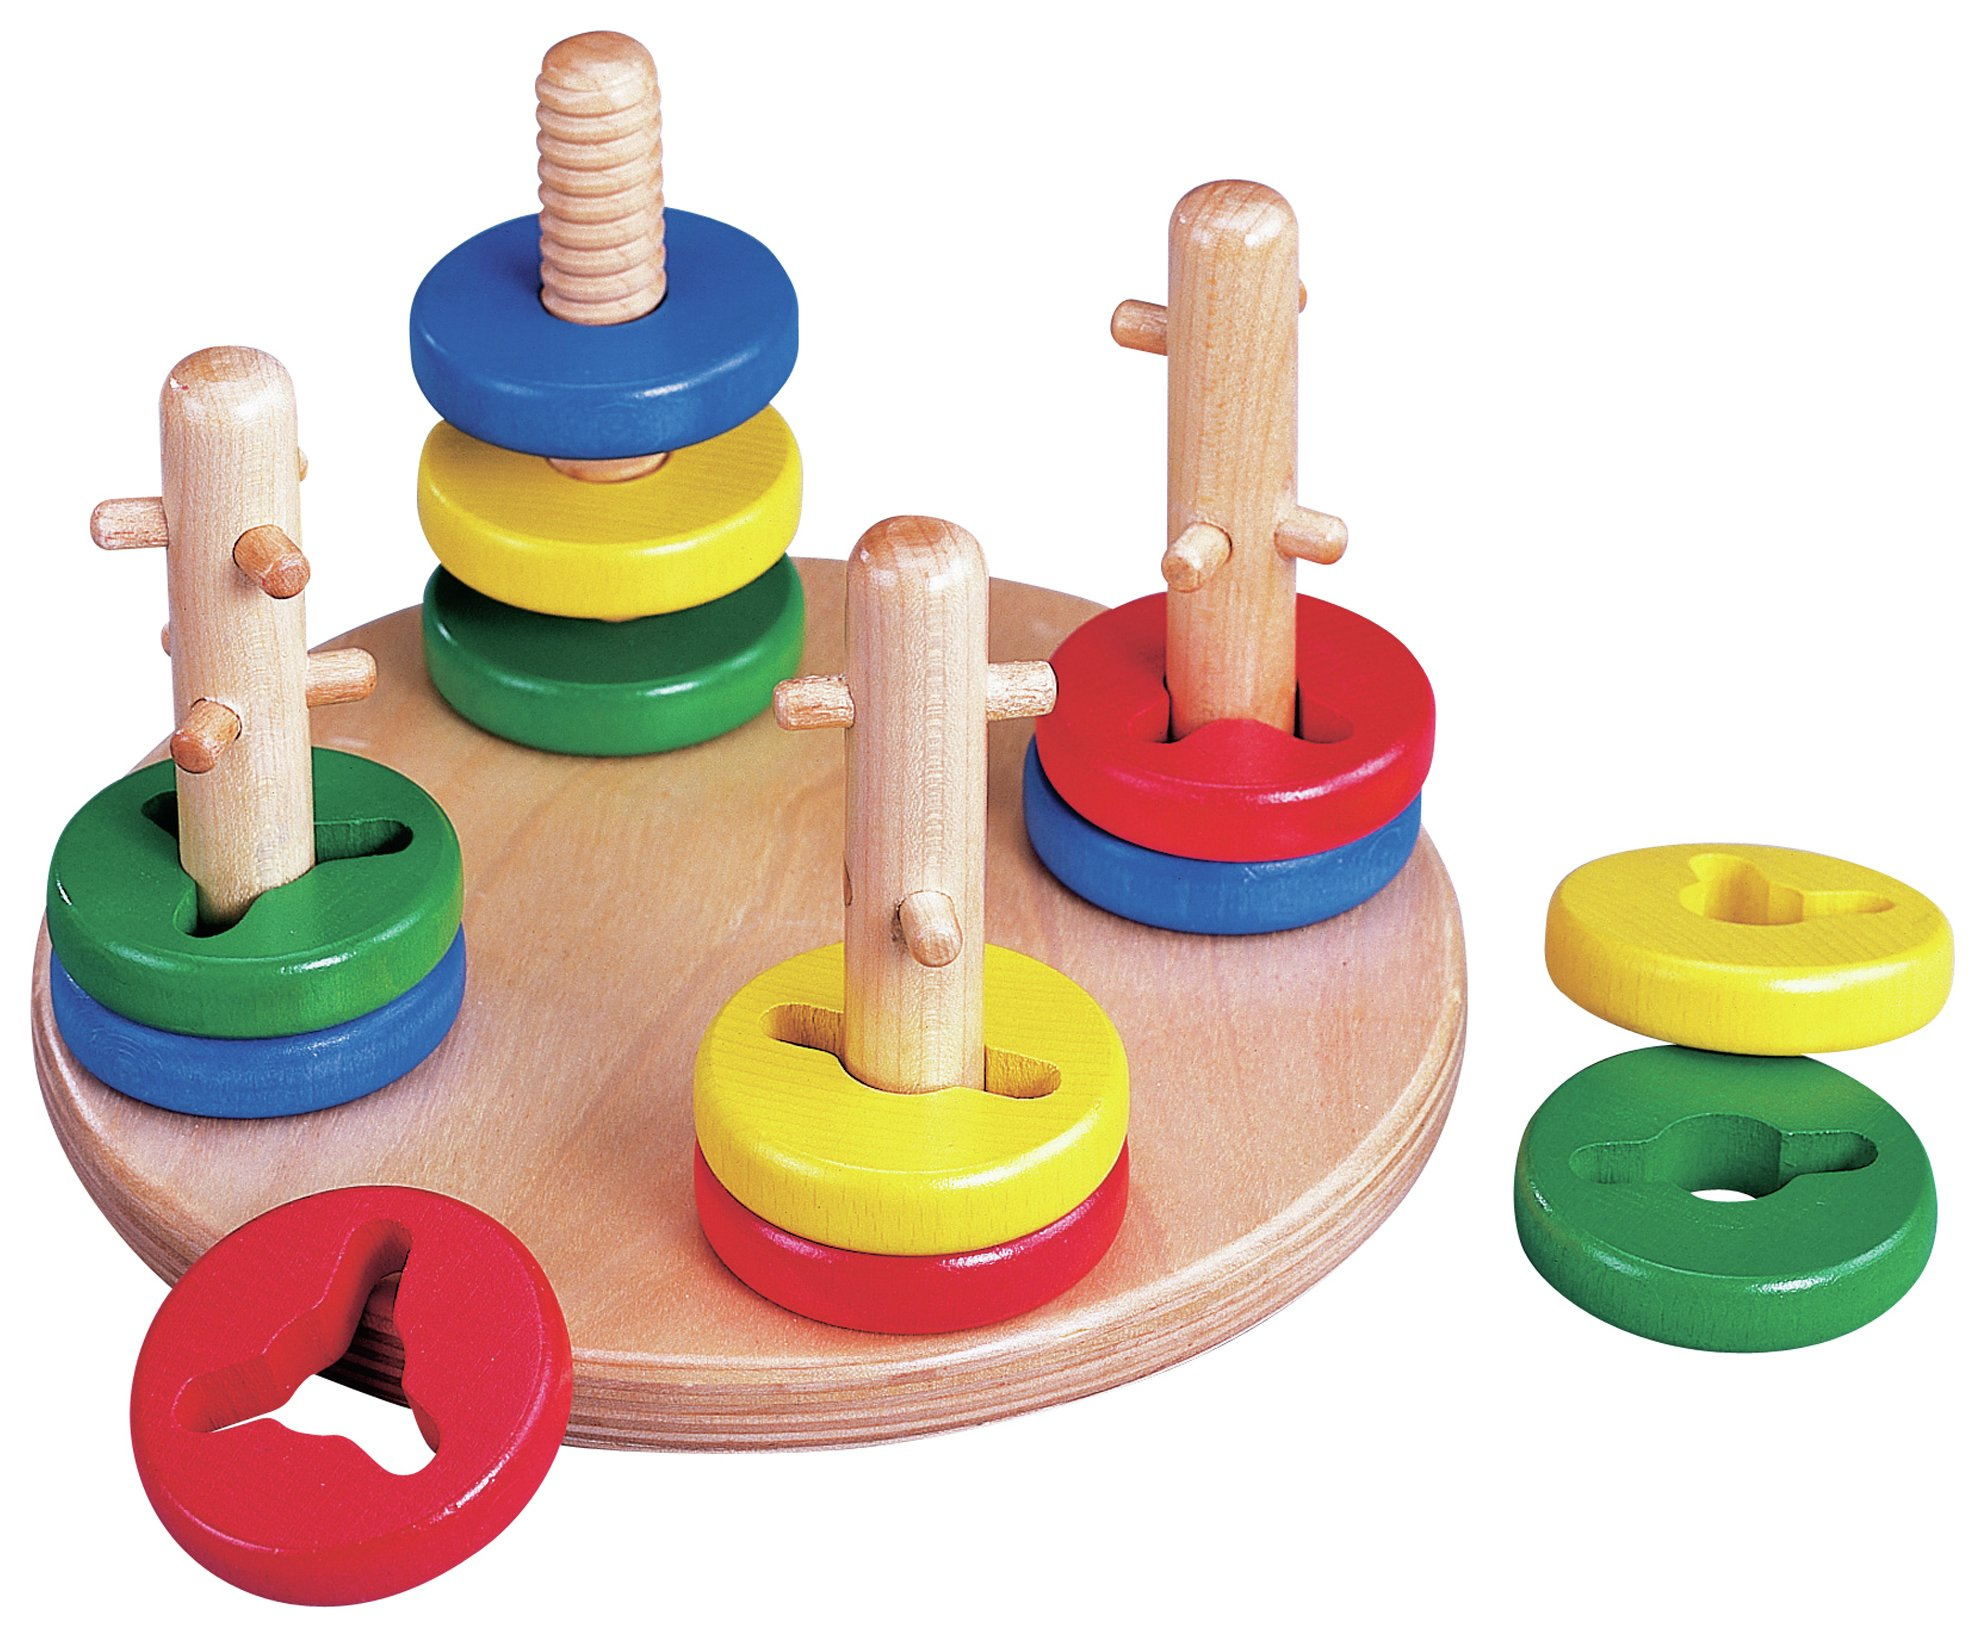 Image of Turn and Sort Shape Sorting Toy.